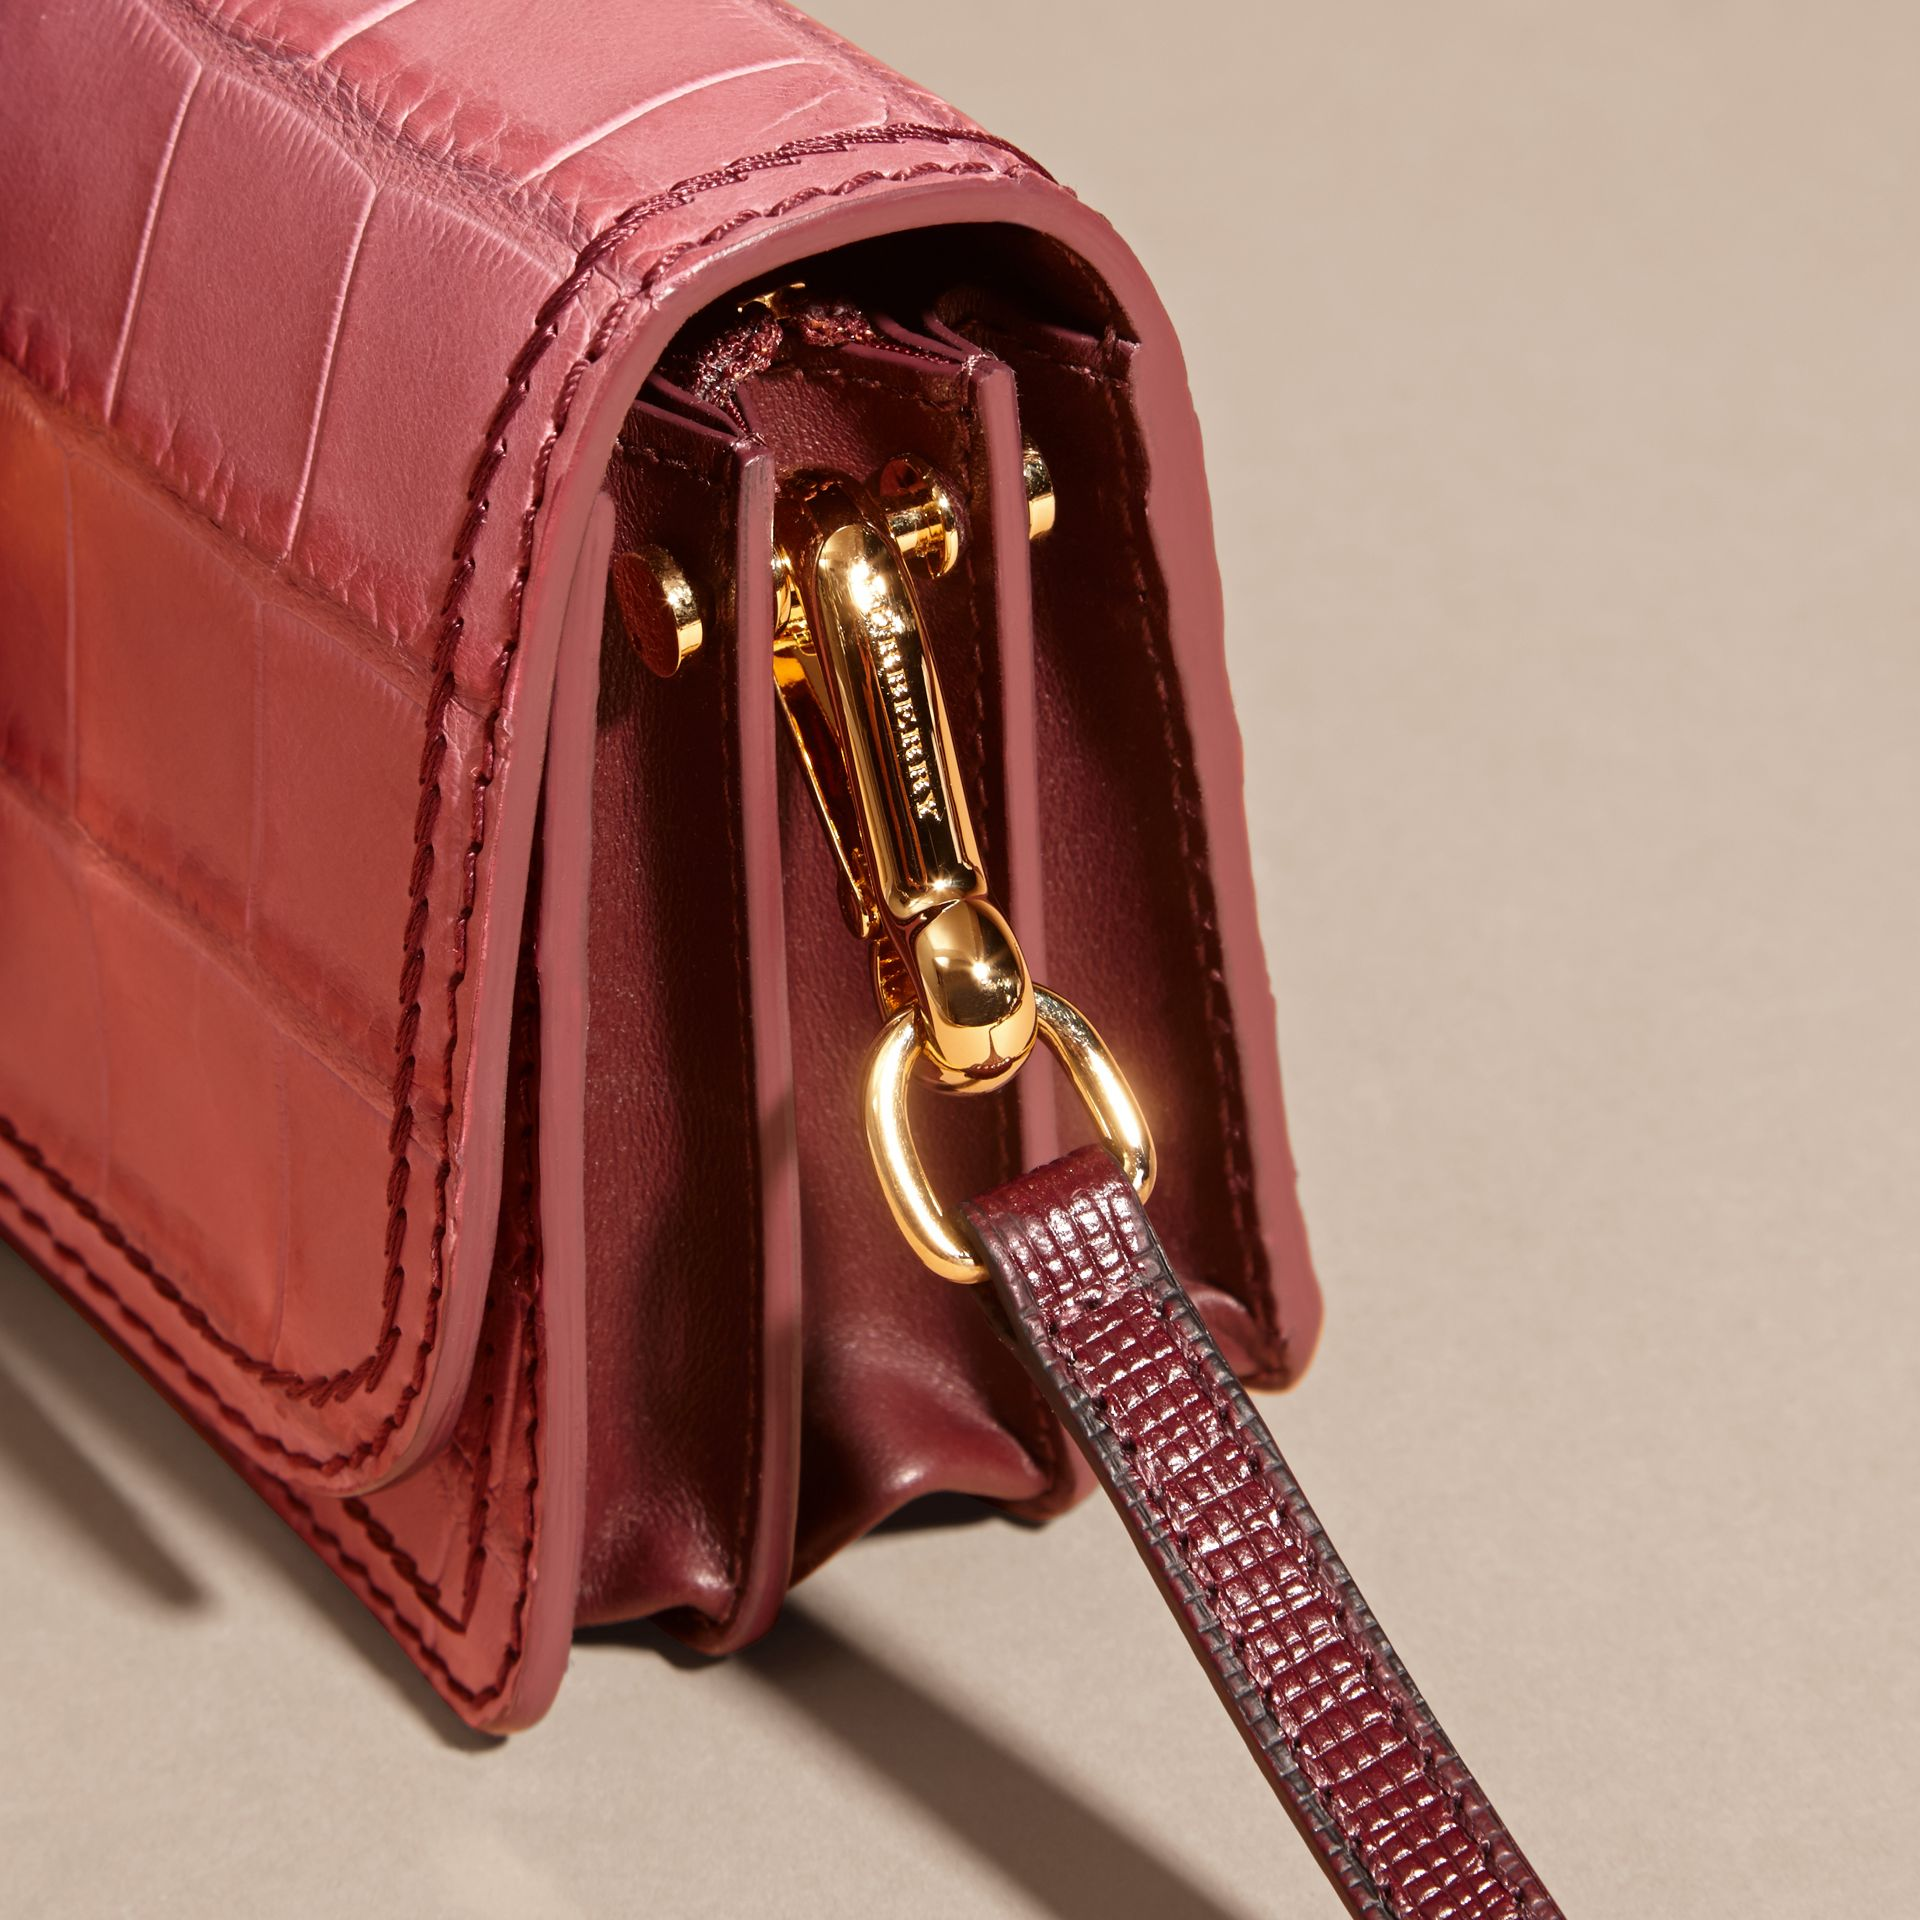 The Small Buckle Bag in Alligator and Leather in Dusky Pink/ Burgundy - Women | Burberry United States - gallery image 2